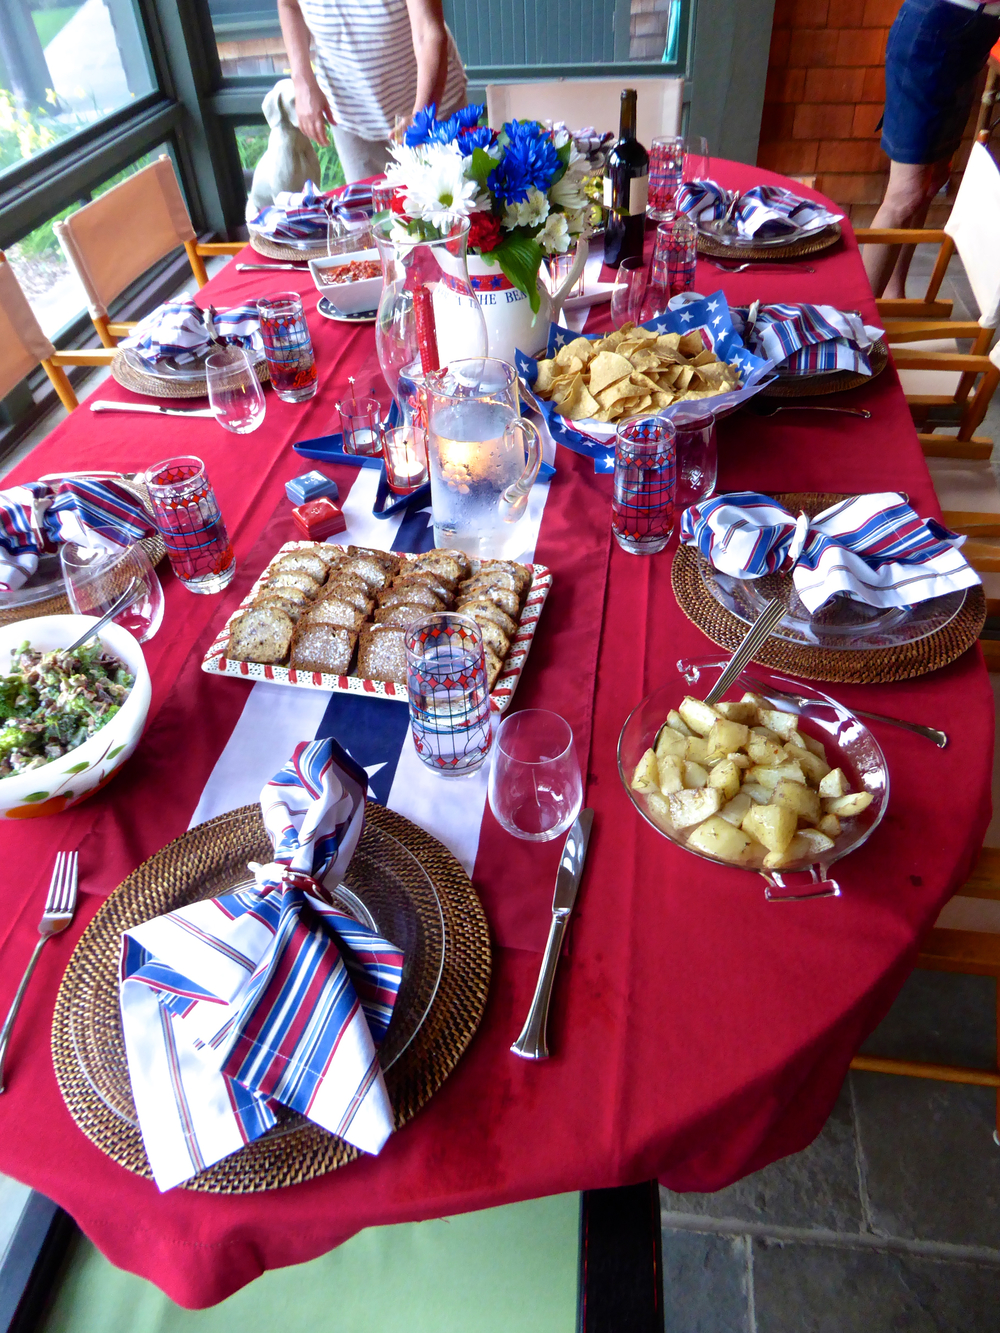 4thJuly_tabletop_Sue_spiritedtable_photo03.jpg